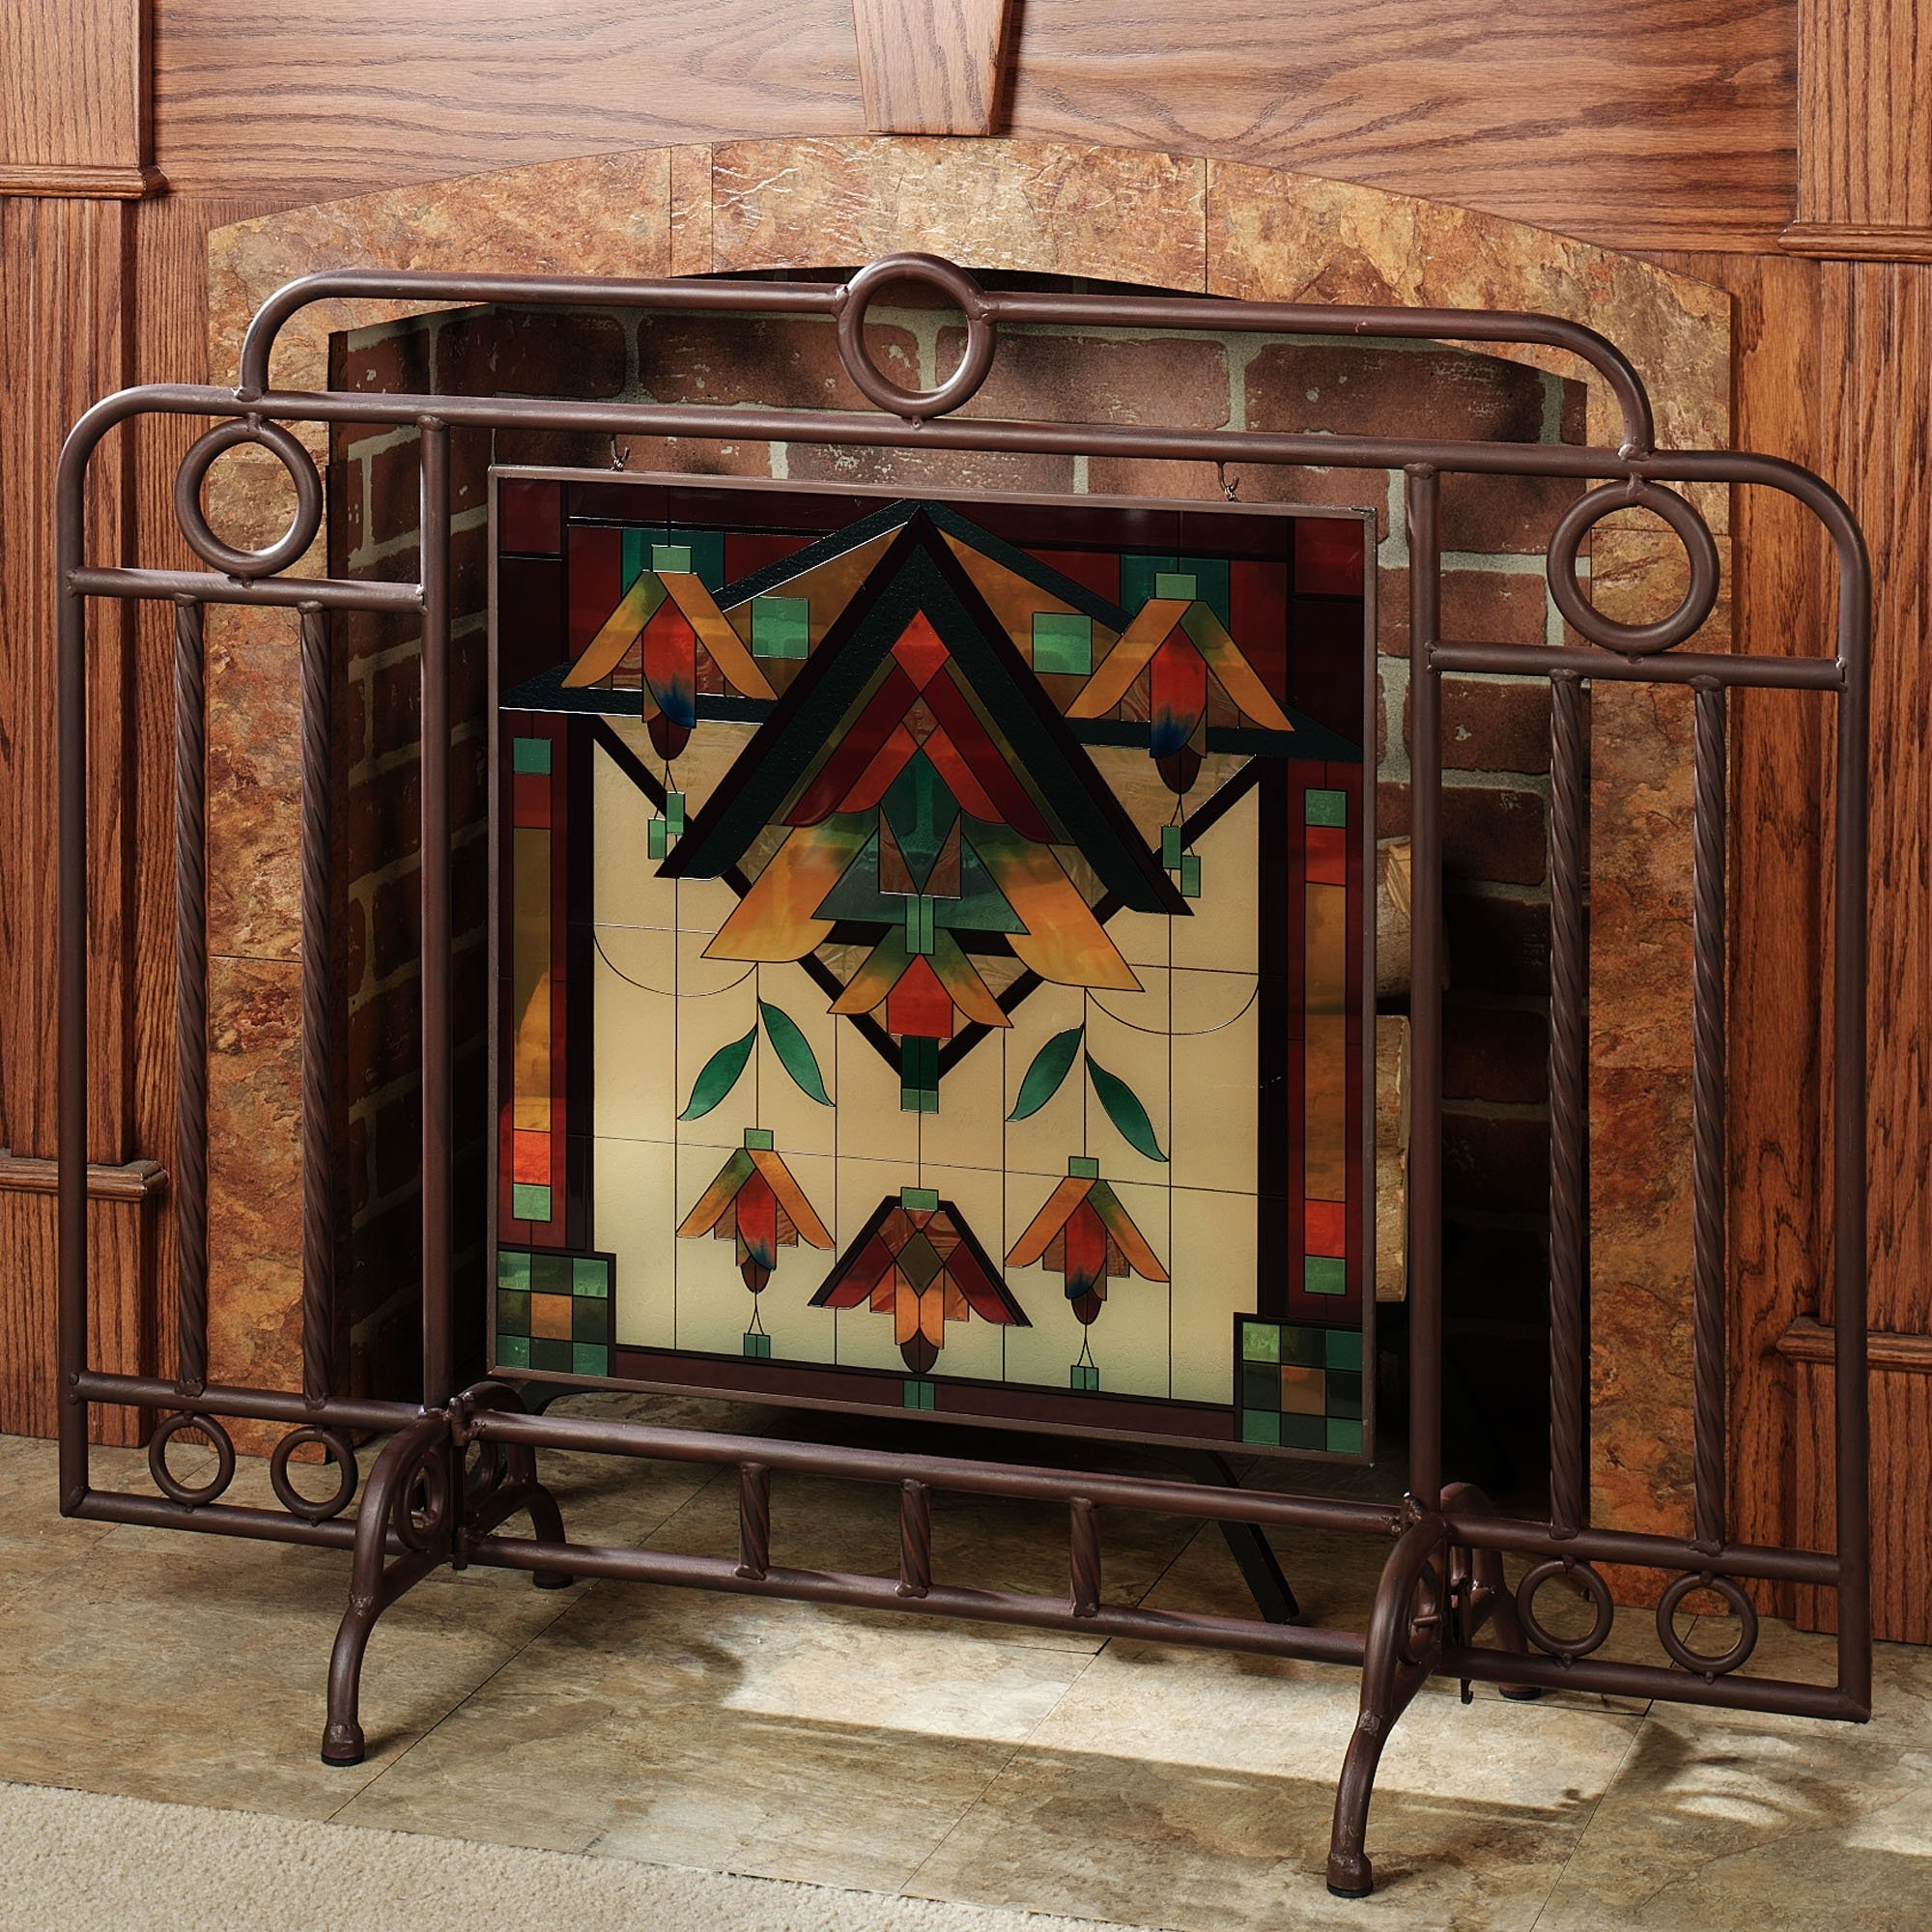 Madison Art Center Design: To Install Wrought Iron Fireplace Screens